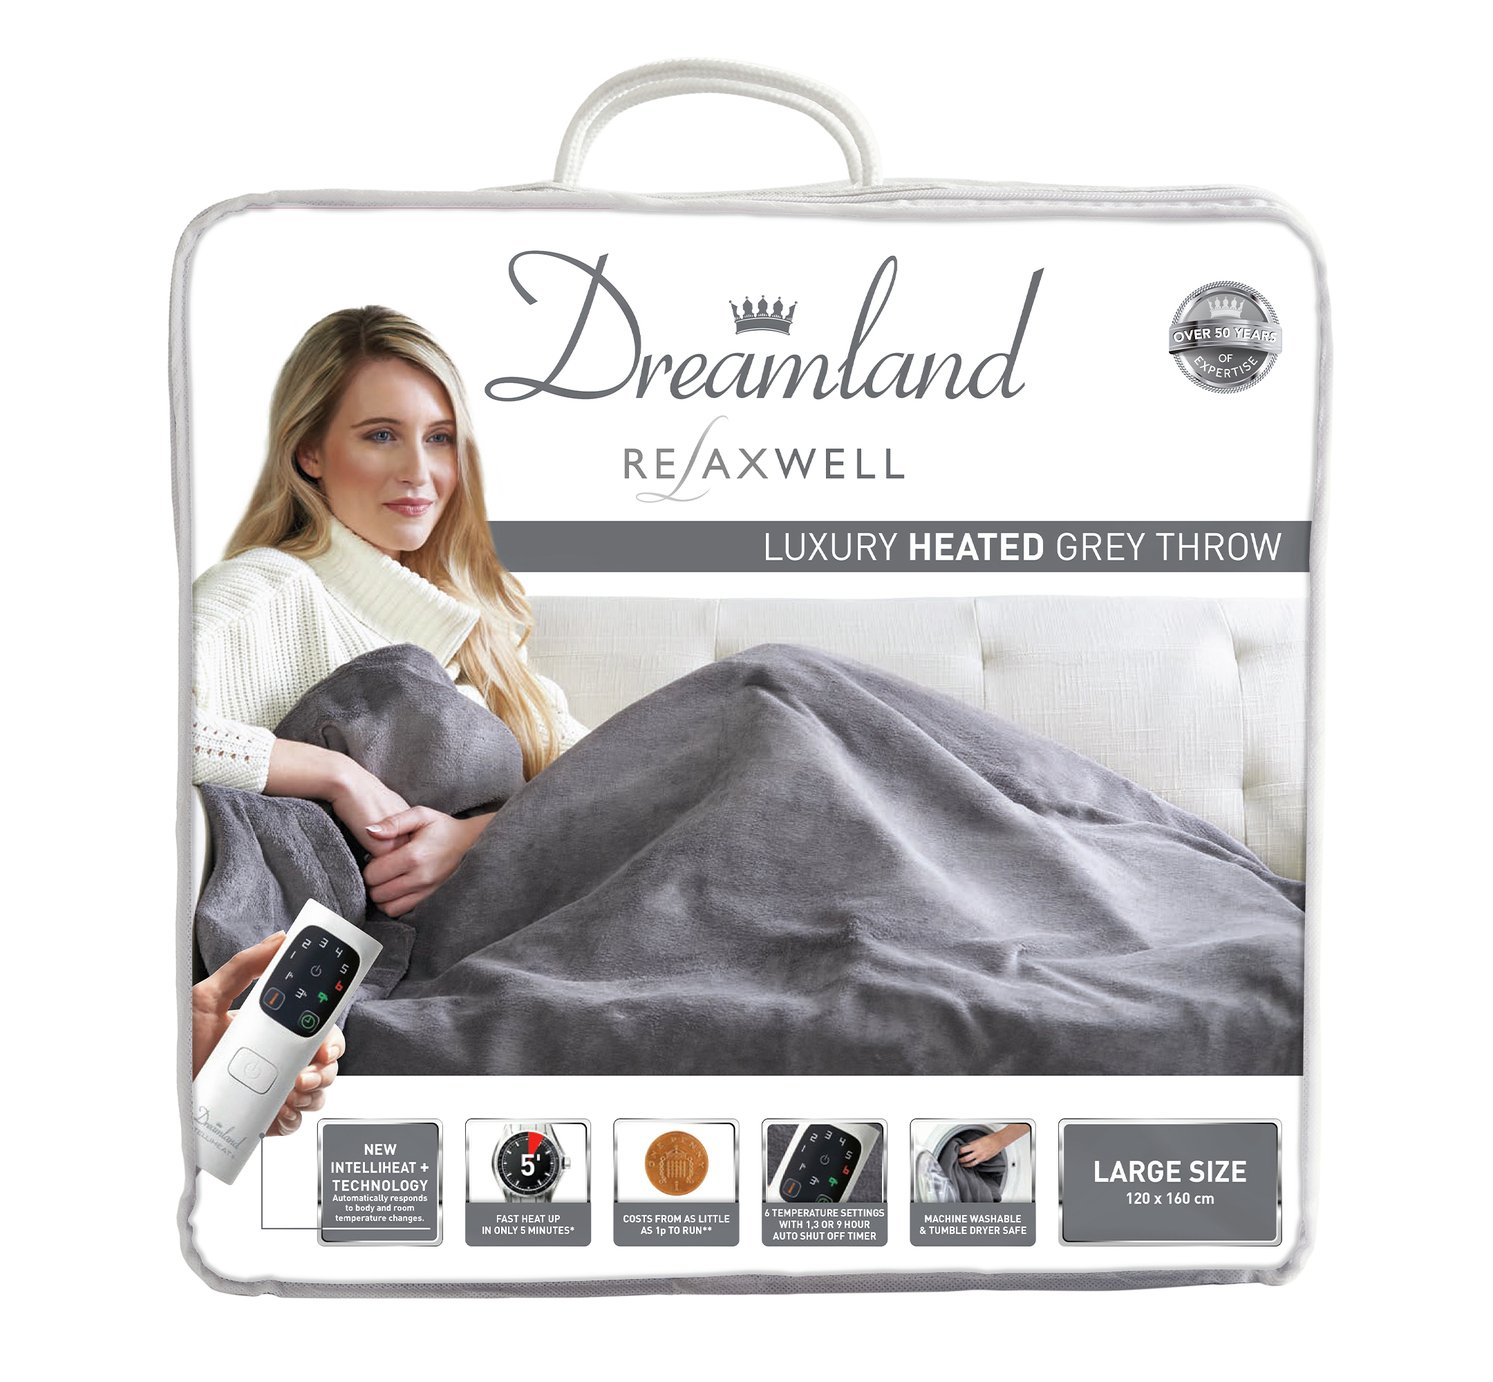 relaxwell by dreamland luxury velvety heated throw grey. Black Bedroom Furniture Sets. Home Design Ideas